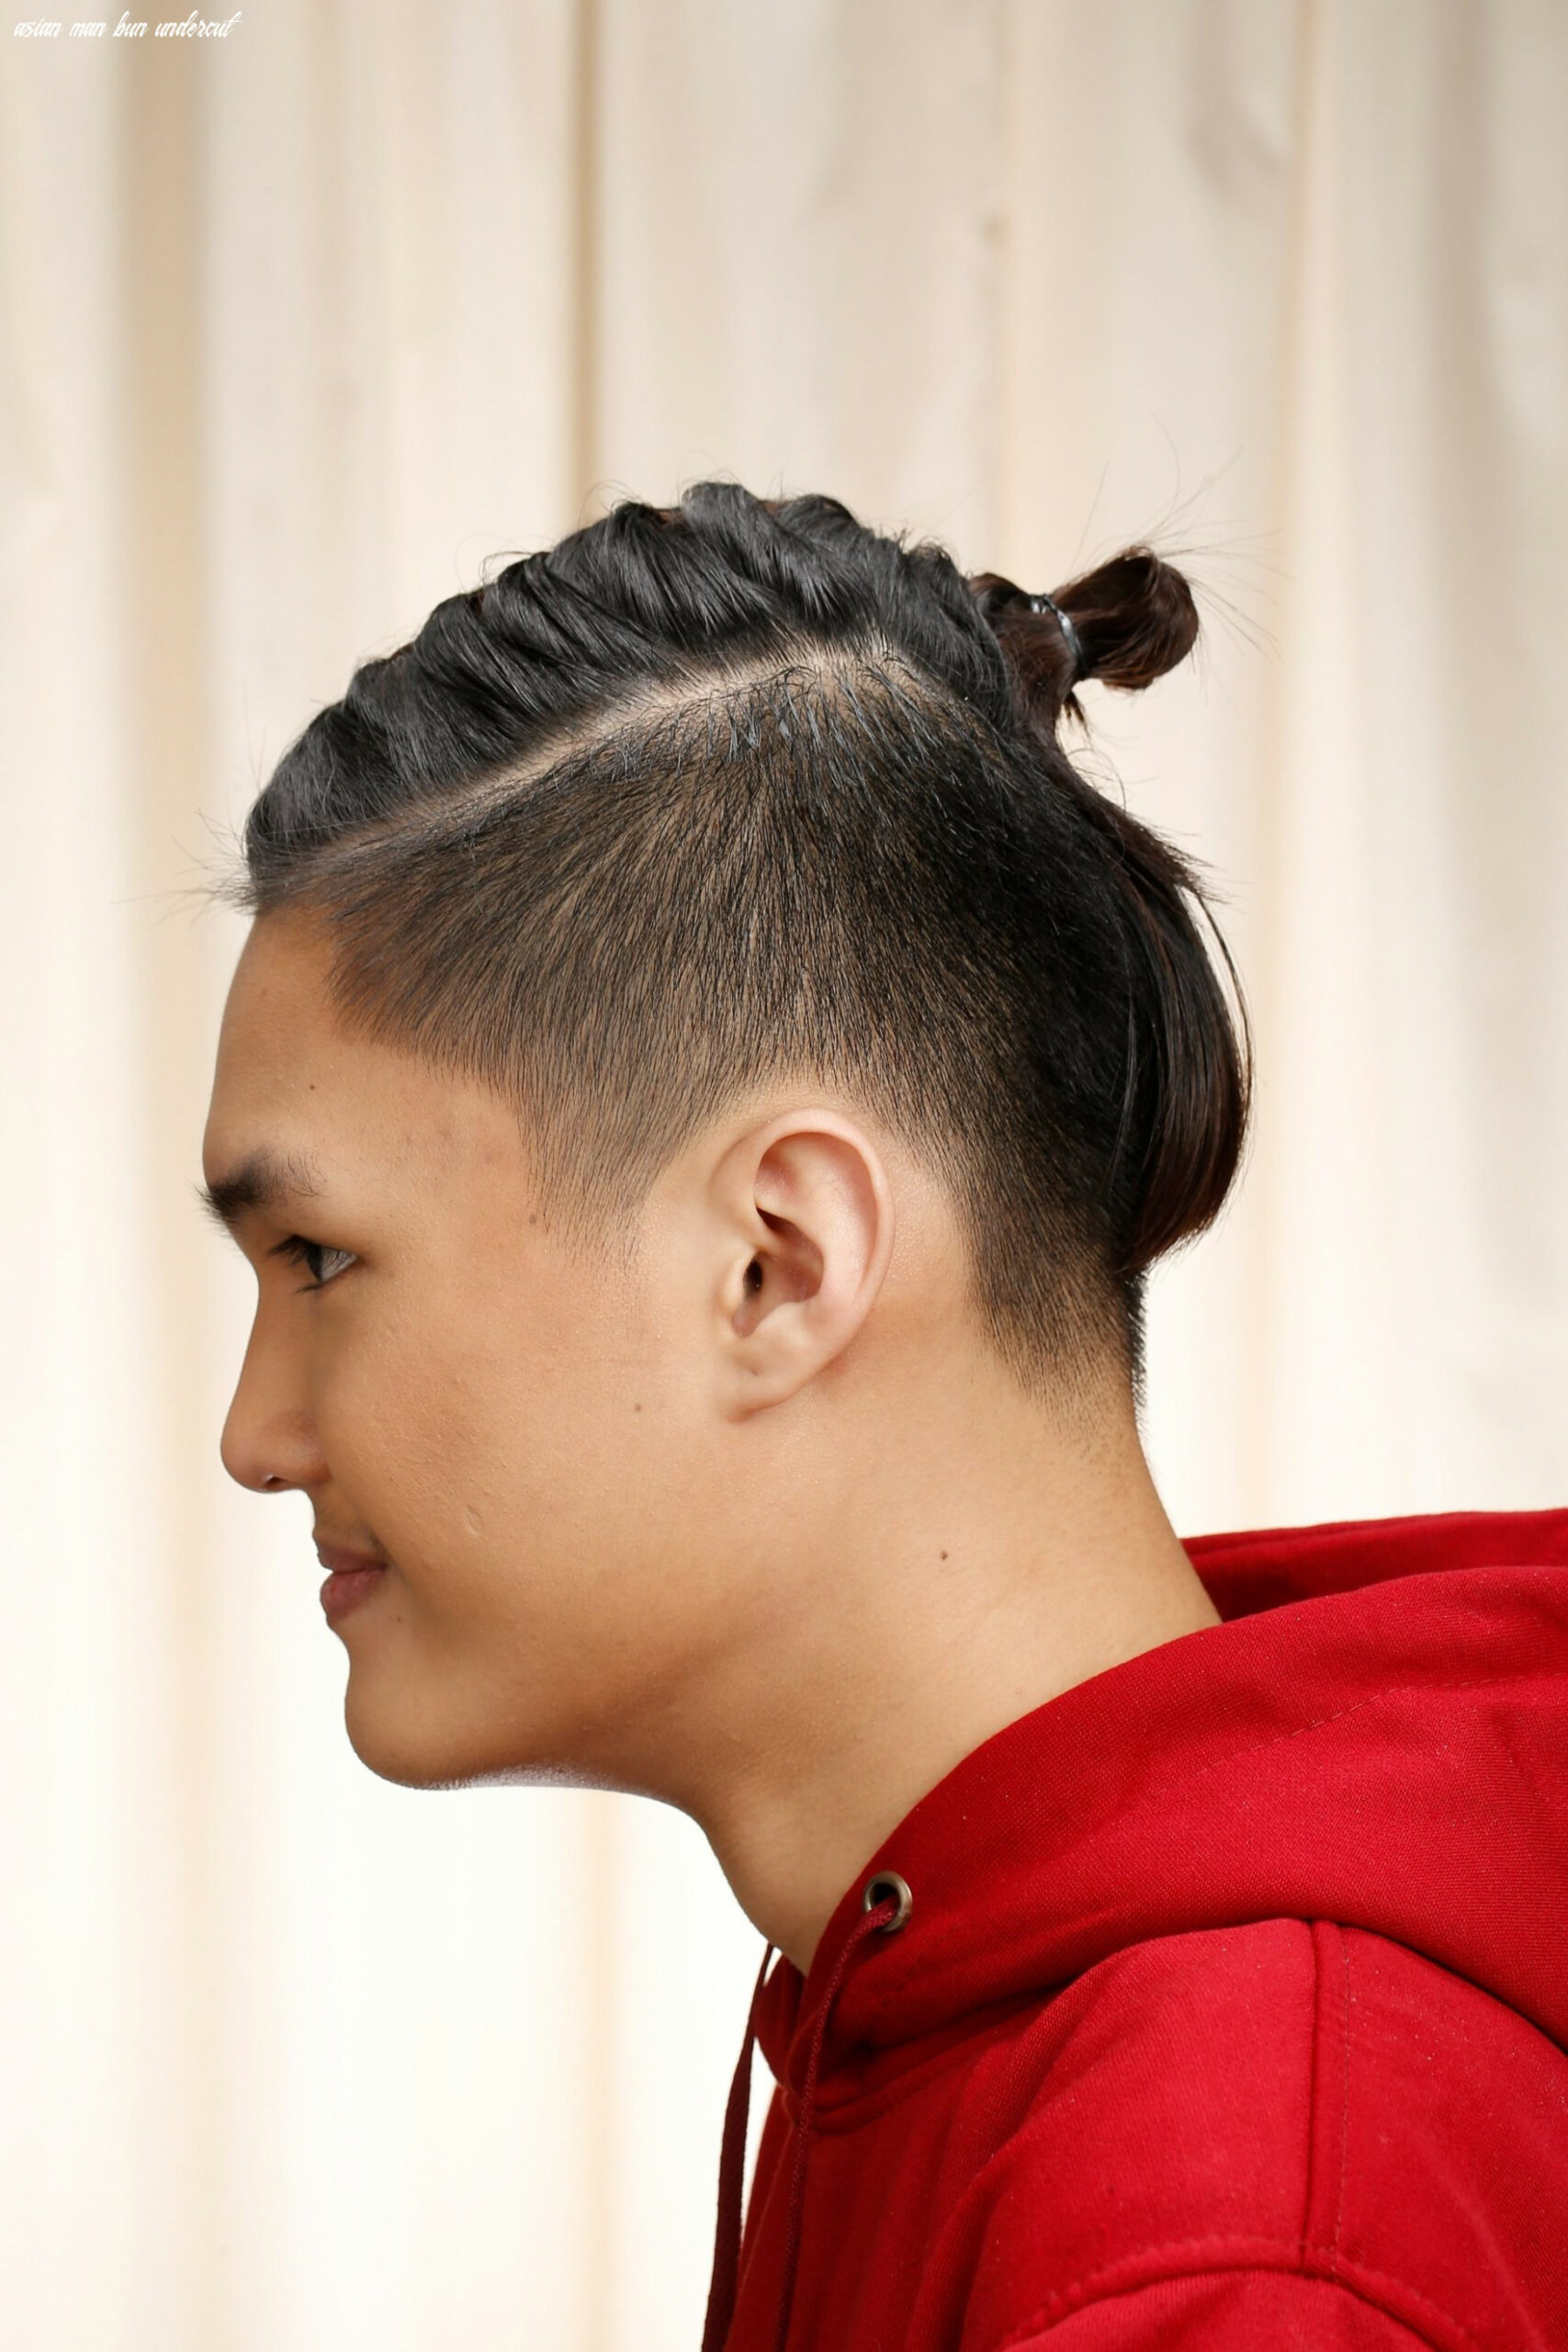 To see how various body modifications affect people's perceptions of you, 2,600 people were surveyed. 10 Asian Man Bun Undercut Undercut Hairstyle